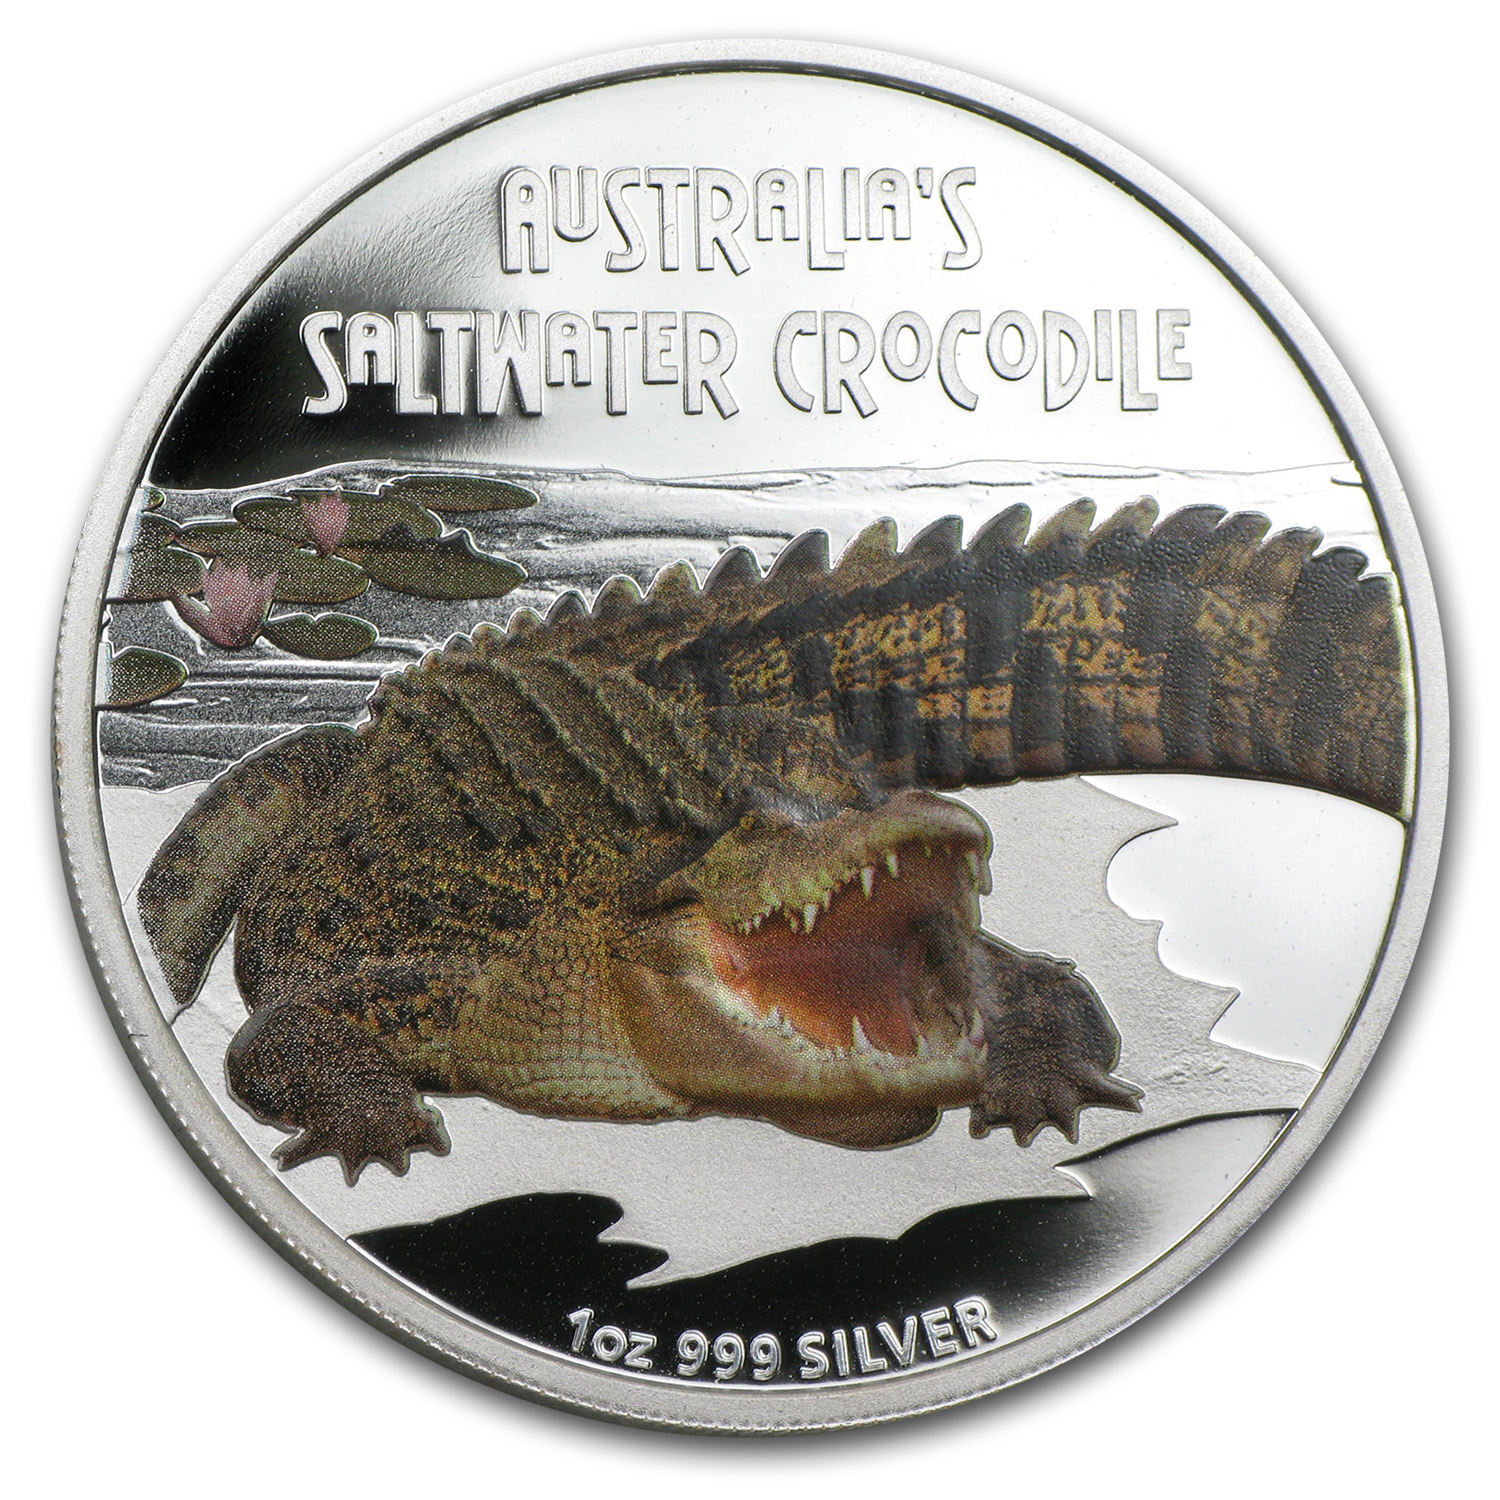 2009 Tuvalu 1 oz Silver Saltwater Crocodile Proof